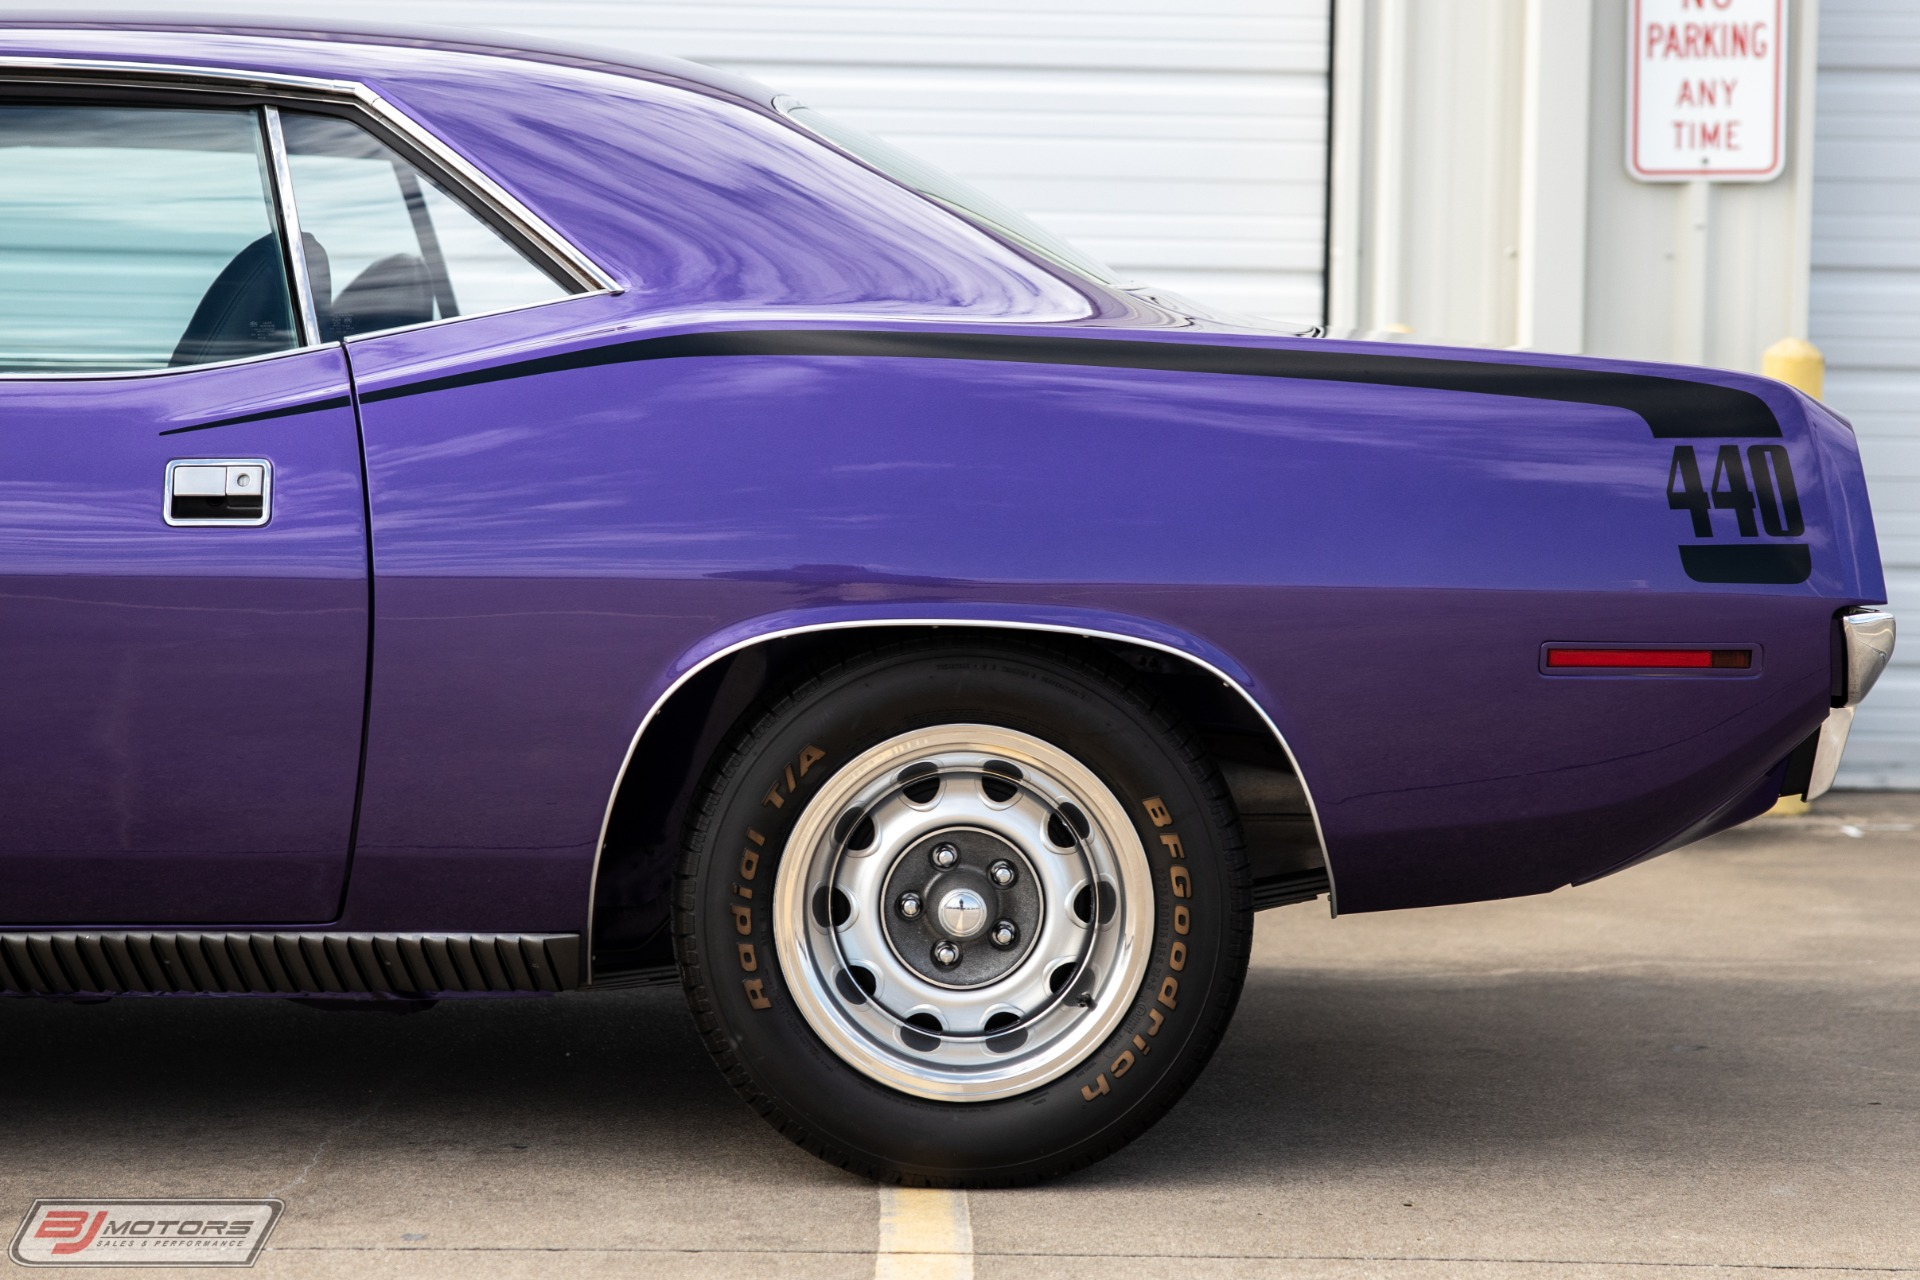 Used 1970 Plymouth Barracuda 440 Six Pack in Plum Crazy Purple For